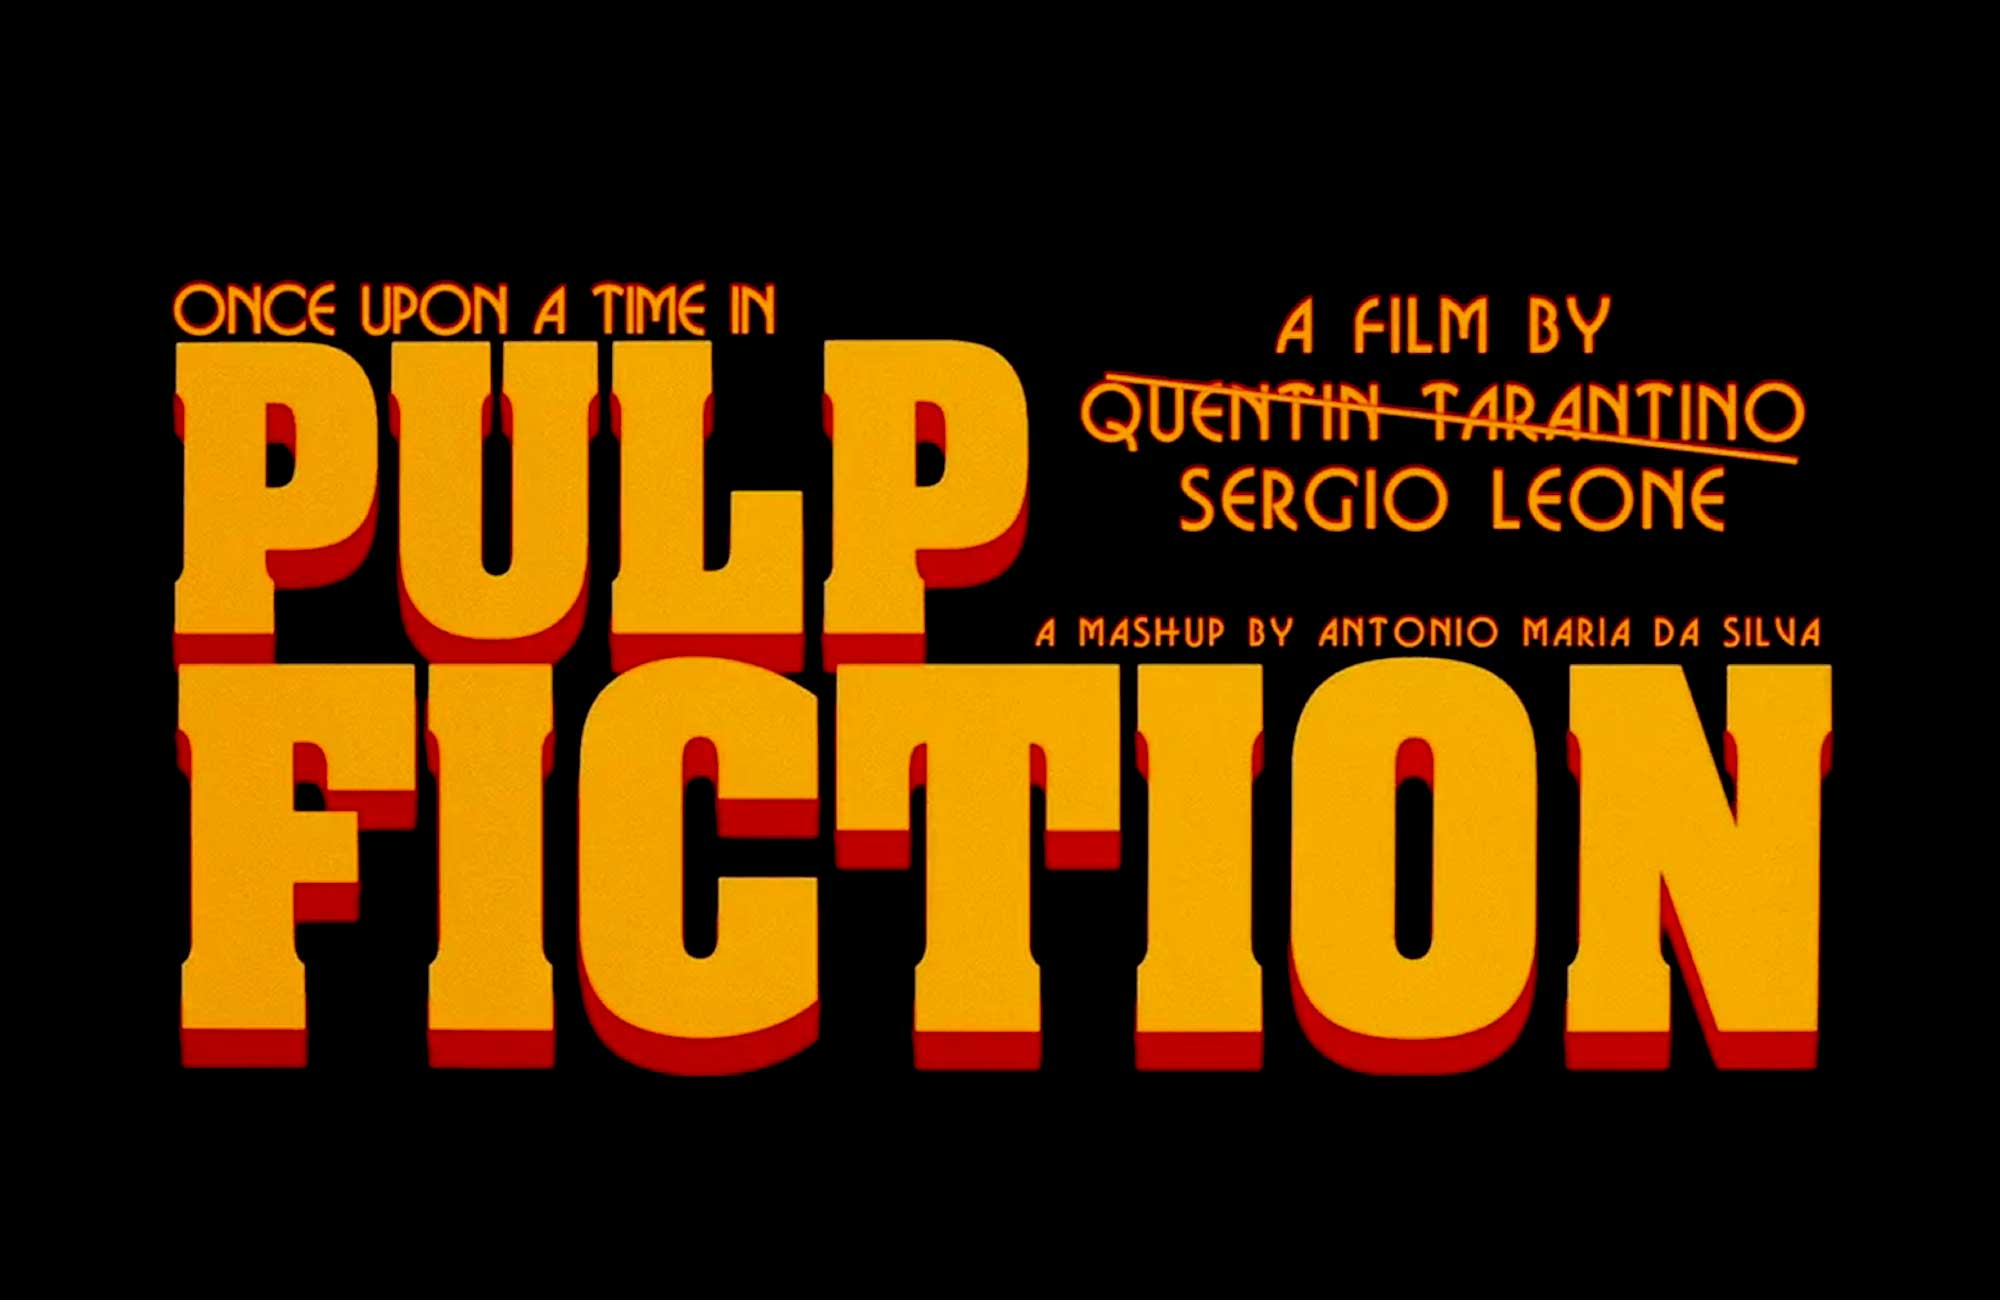 Sergio Leone's Pulp Fiction